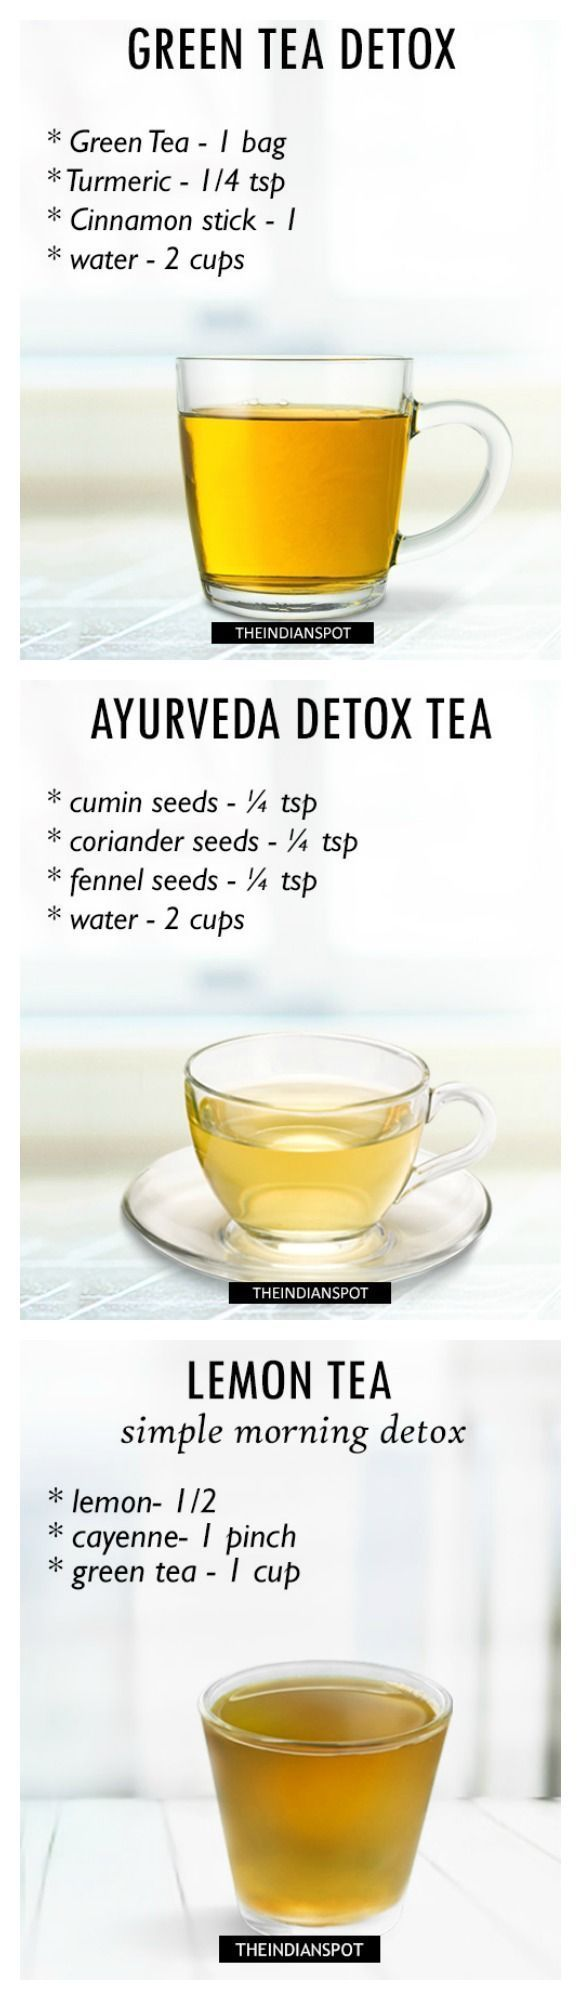 ... skin diet detox detox tea tea recipes smoothie recipes drink recipes